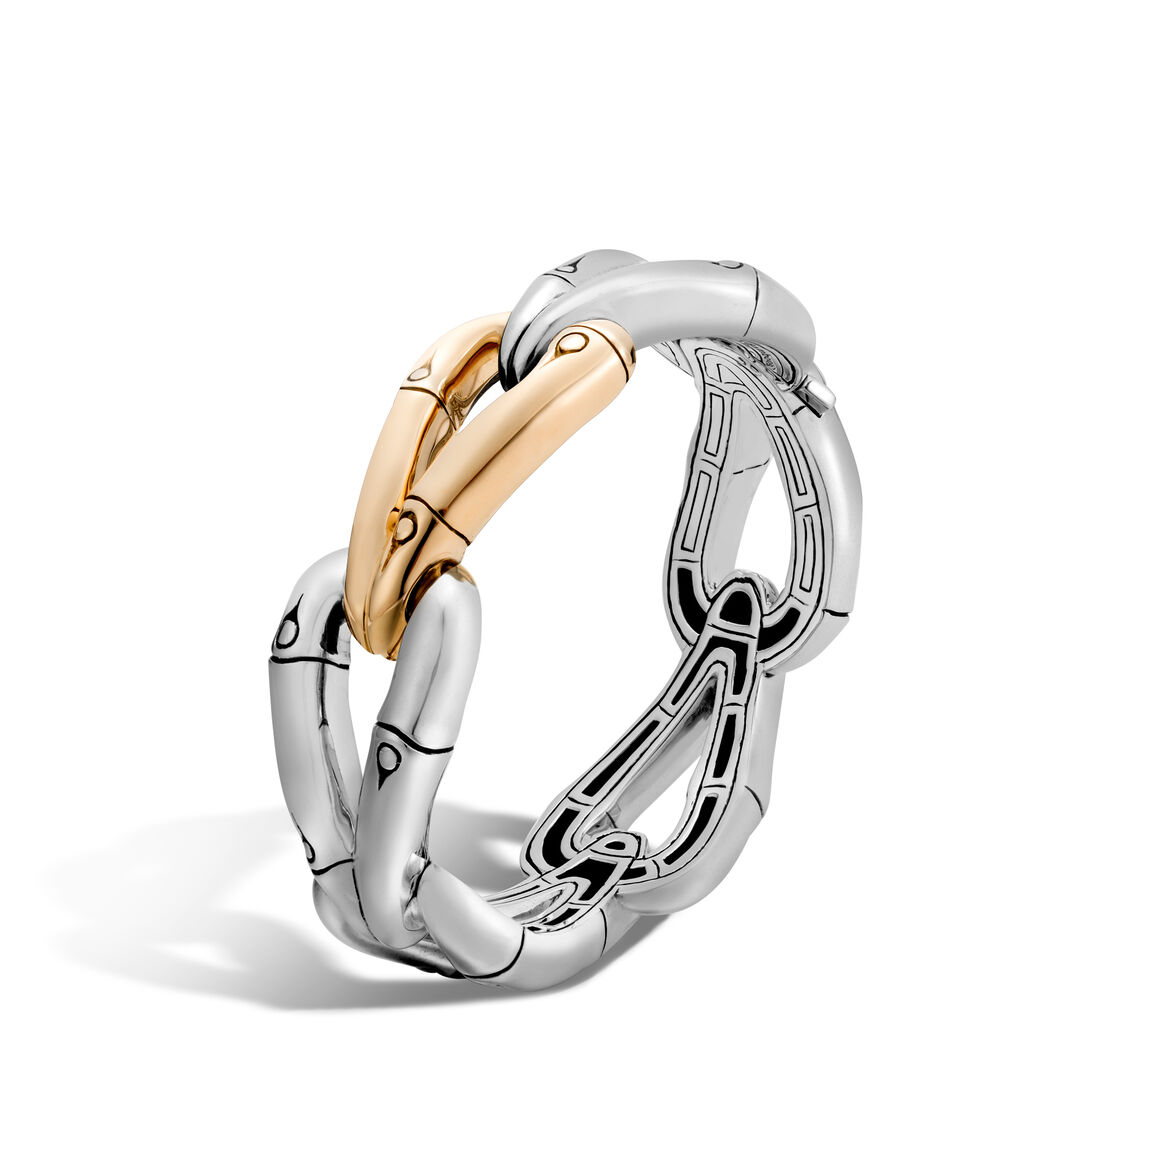 Bamboo 21.5MM Hinged Bangle in Silver and 18K Gold